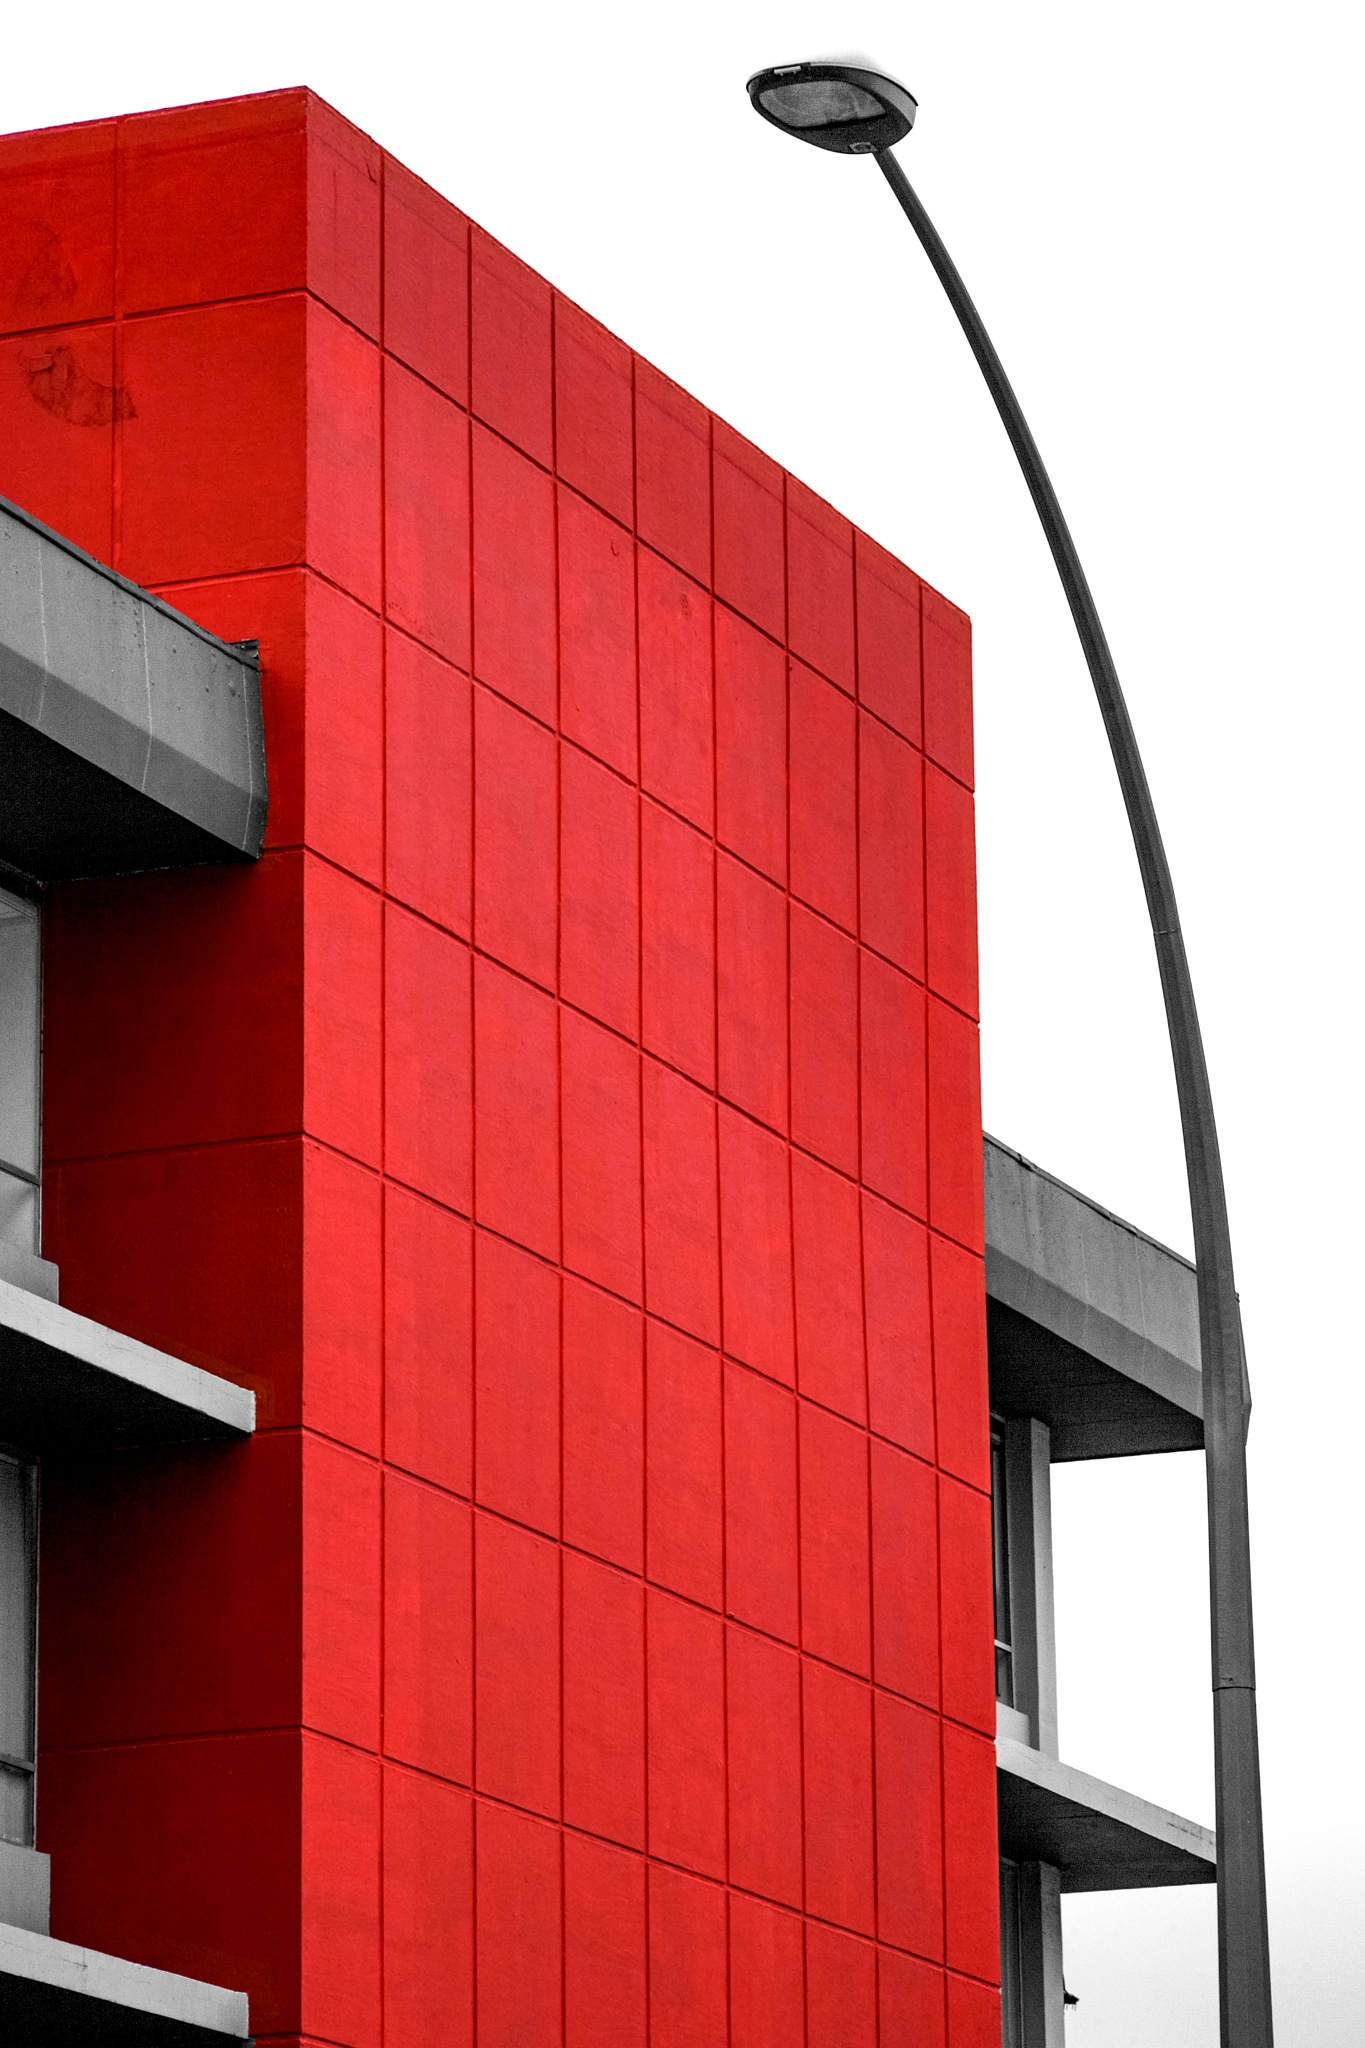 RED BUILDING by moonchae71